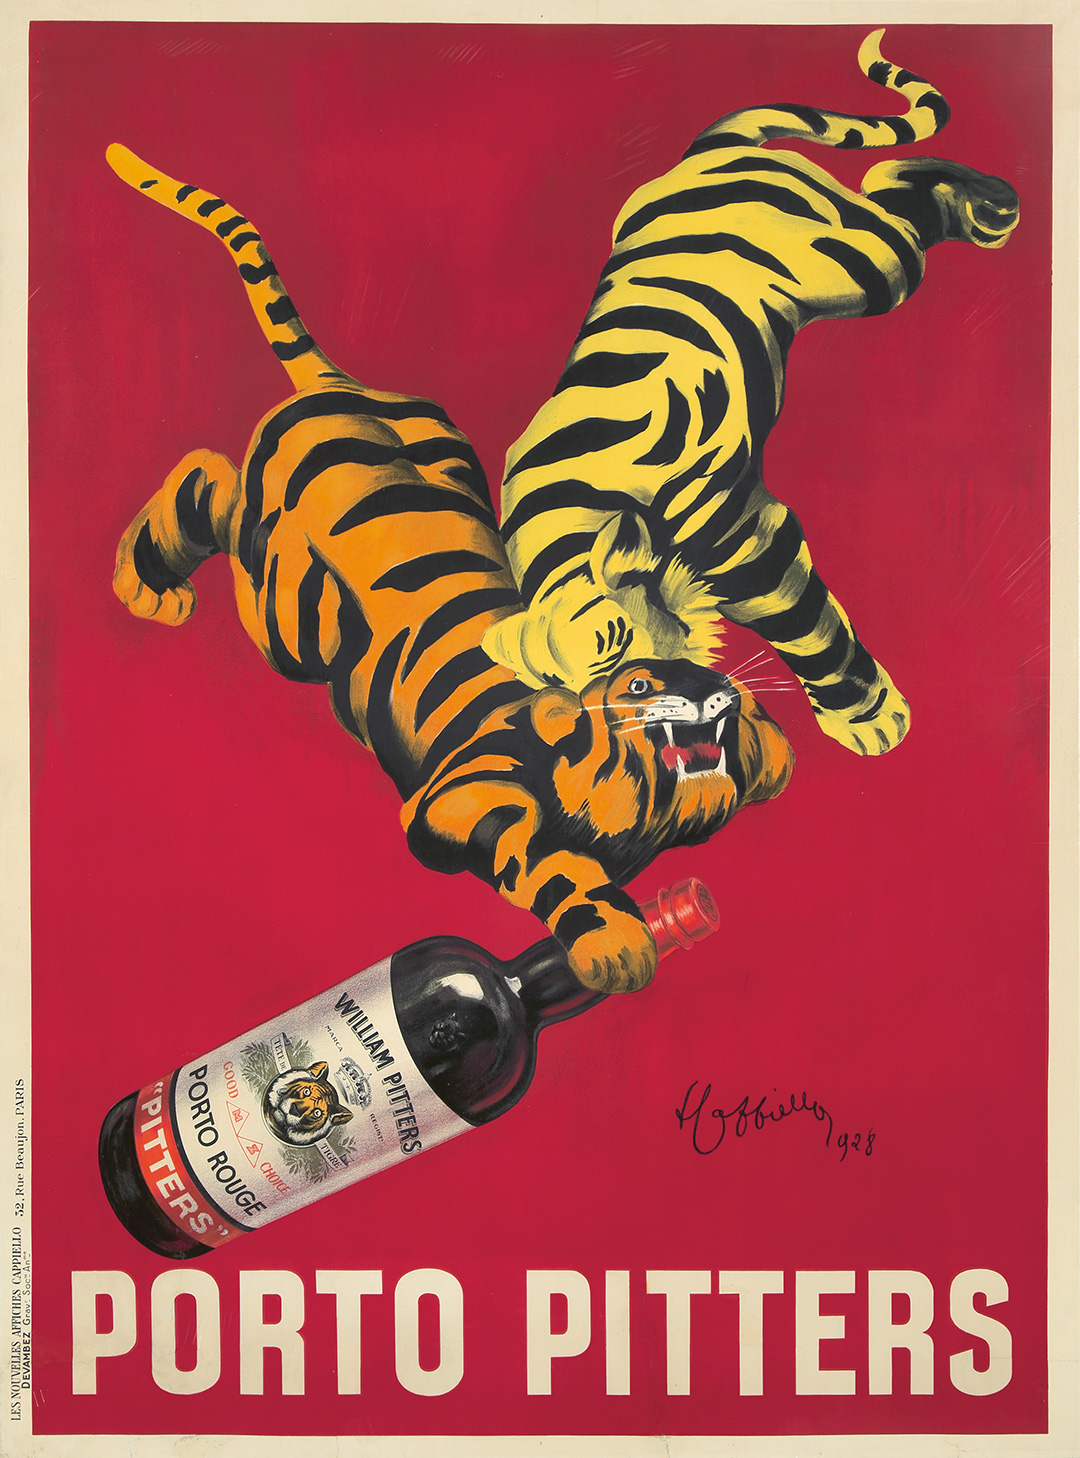 Poster Auctions International's Rare Posters Auction #81, July 21st, live and online, features 500 rare and iconic works